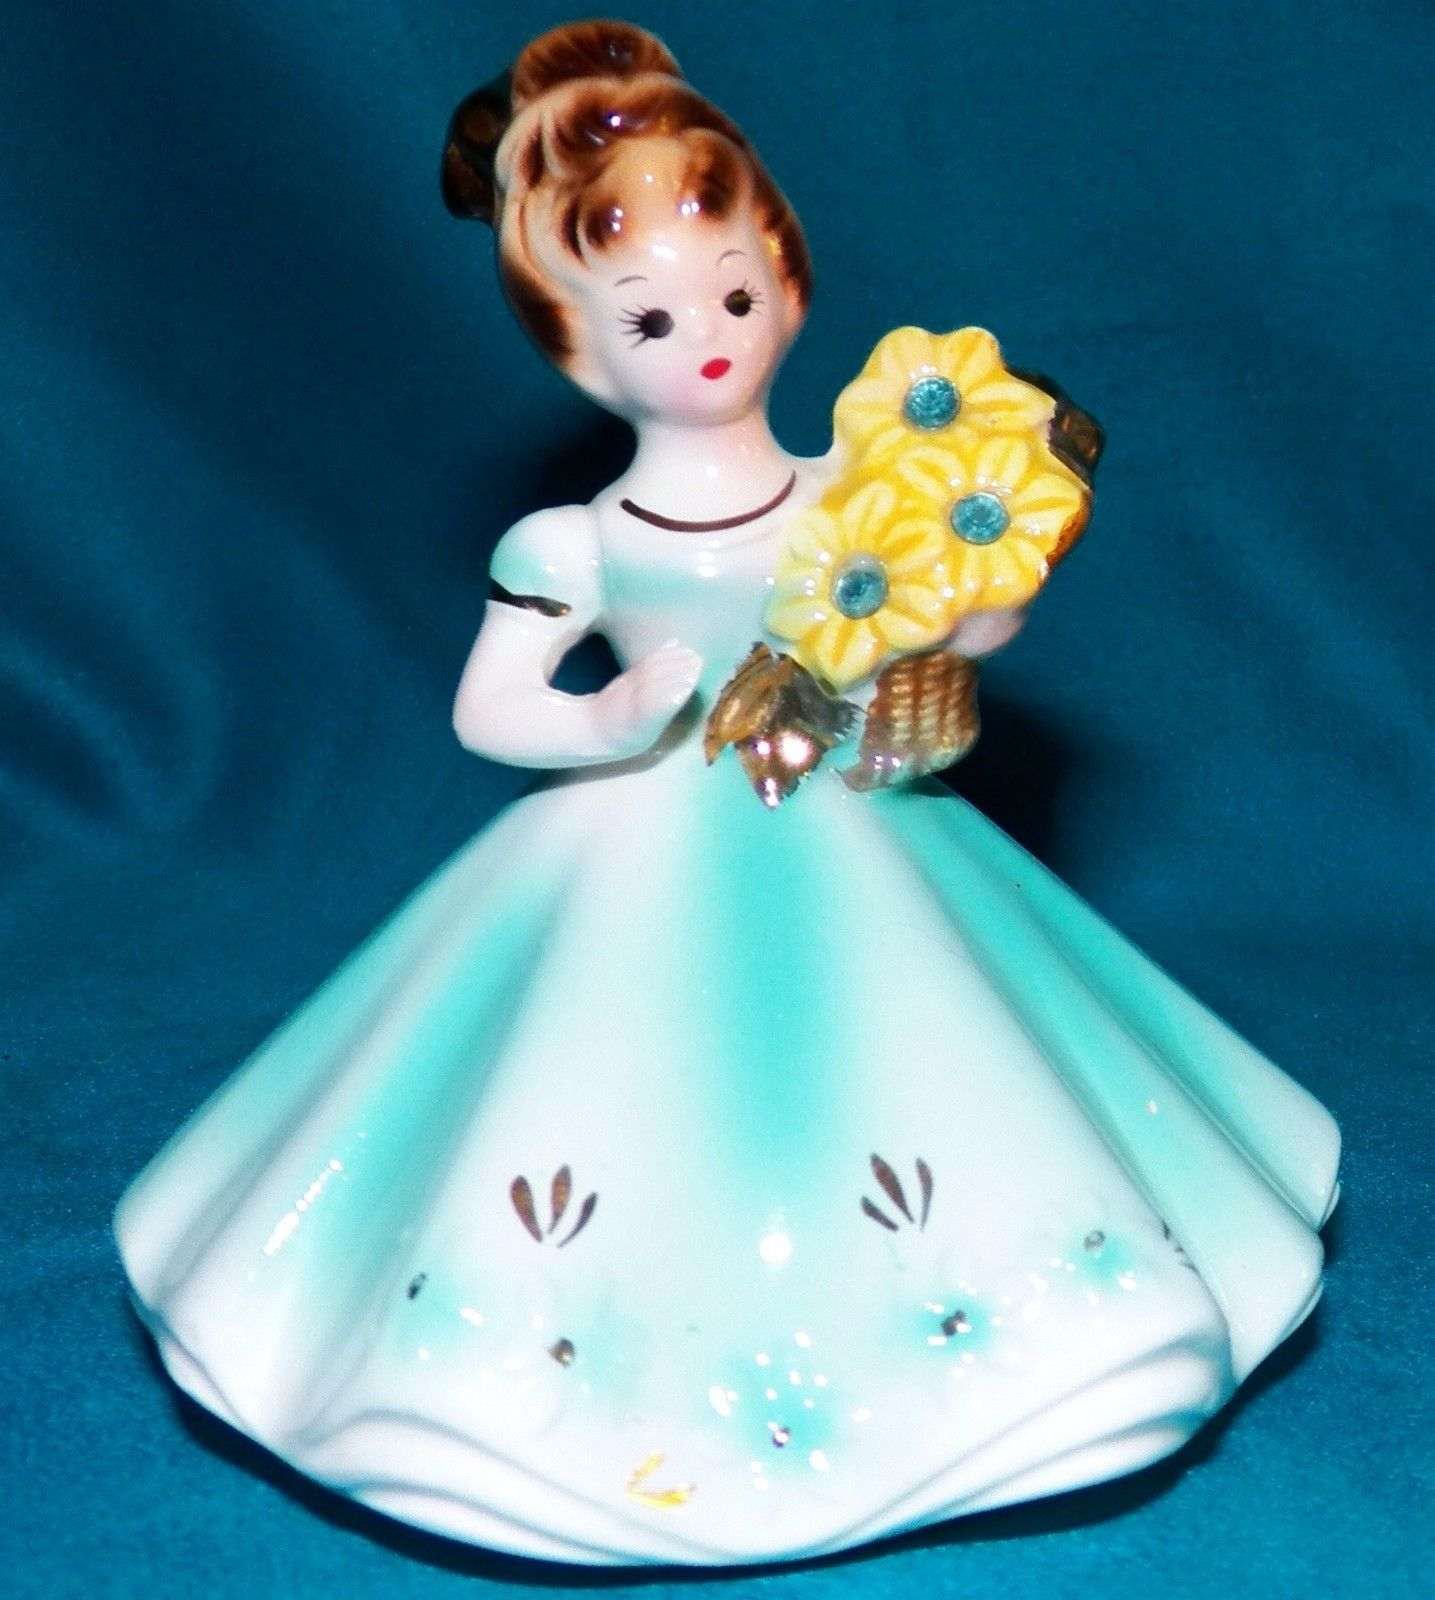 Vintage Josef Originals Birthday Girl Birthstone Figurine